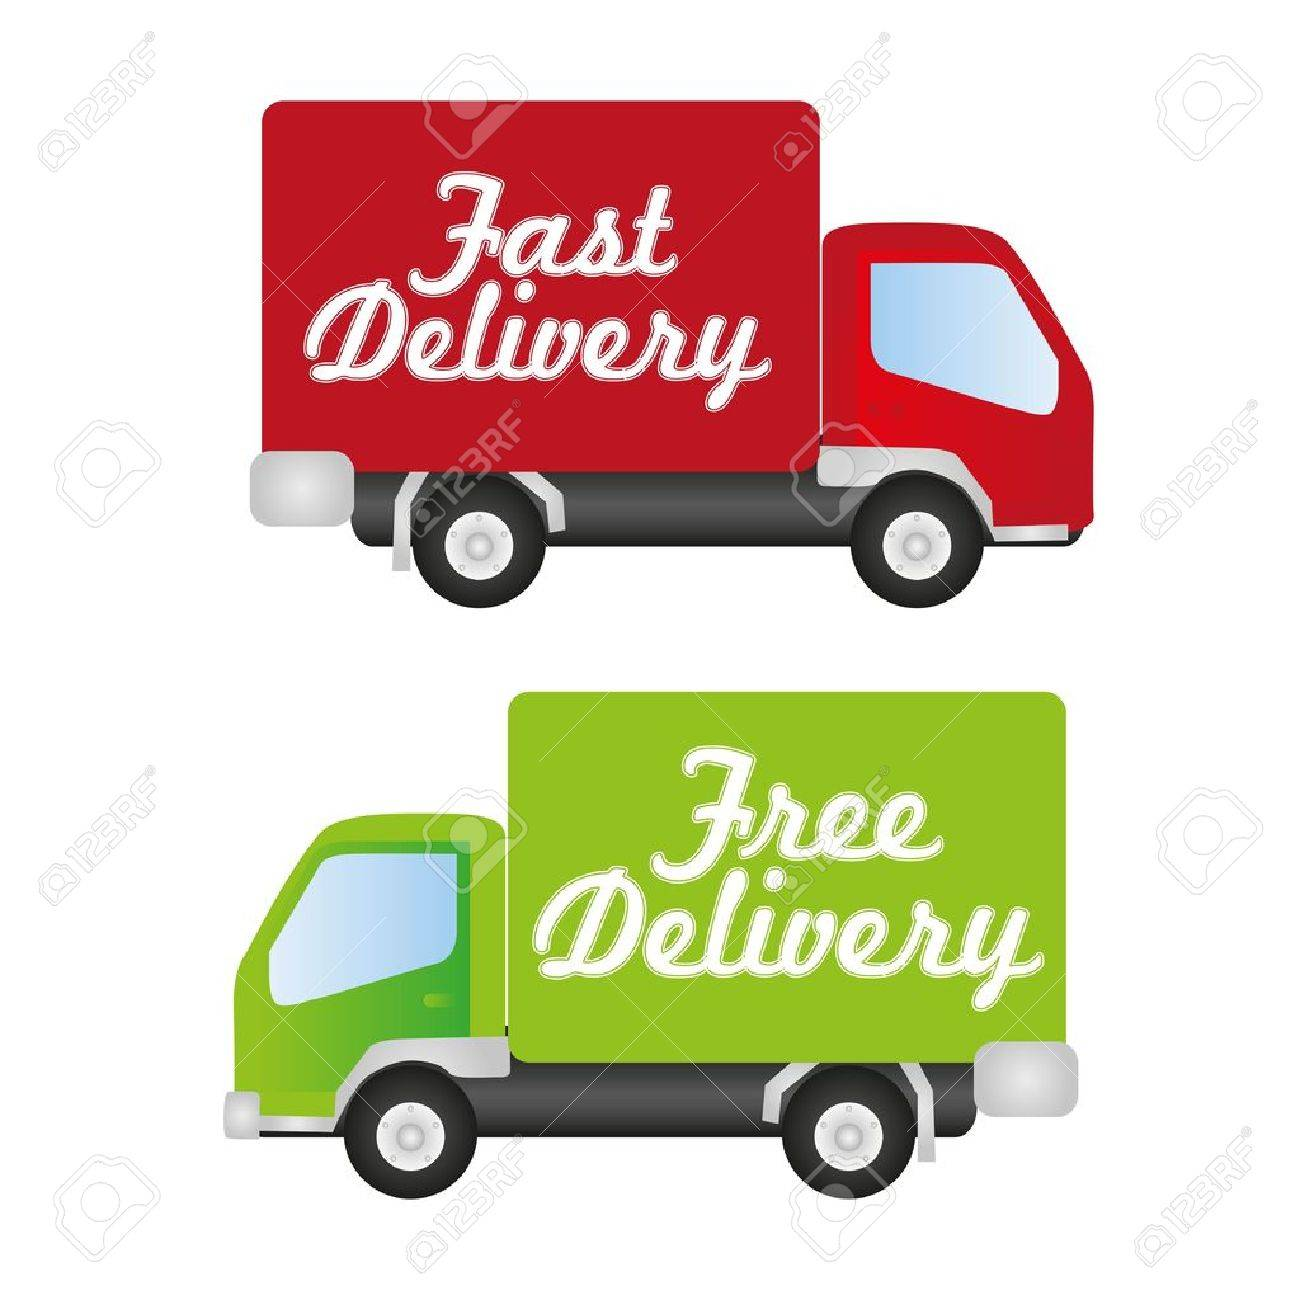 truck fast and free delivery, - 14040808